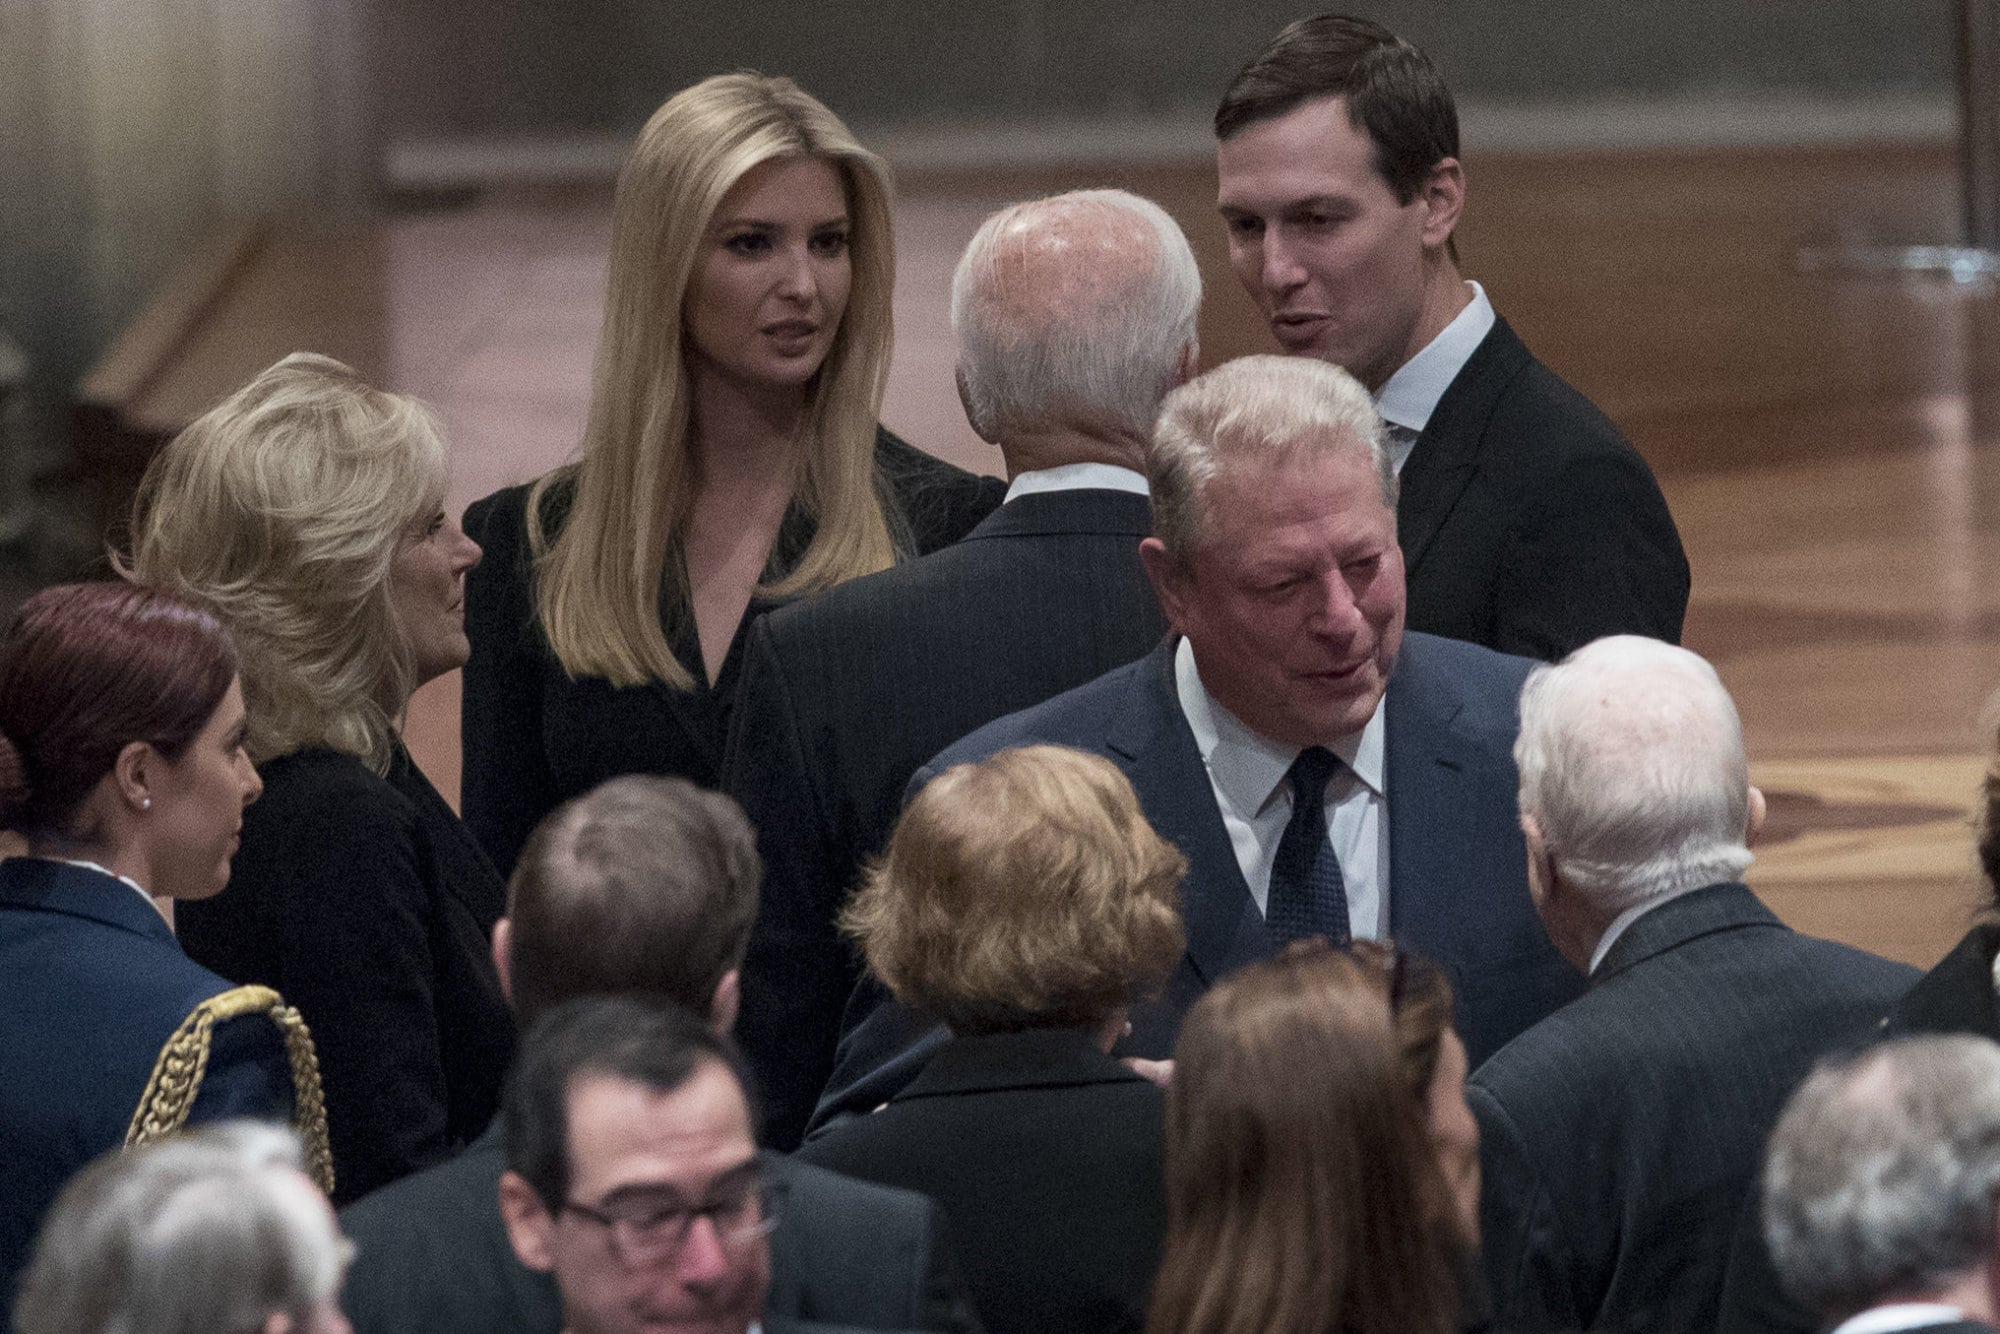 Former Vice President Joe Biden, fourth from left, and his wife Jill Biden, second from left, speak with Ivanka Trump, the daughter of President Donald Trump, third from left, and her husband, President Donald Trump's White House Senior Adviser Jared Kushner, third from right, as former Vice President Al Gore, second from right, speak to former President Jimmy Carter, right, and former first lady Rosalynn Carter, bottom center, before a State Funeral for former President George H.W. Bush at the National Cathedral, December 5, 2018 in Washington, DC. President Bush will be buried at his final resting place at the George H.W. Bush Presidential Library at Texas A&M University in College Station, Texas. A WWII combat veteran, Bush served as a member of Congress from Texas, ambassador to the United Nations, director of the CIA, vice president and 41st president of the United States. (Photo by Andrew Harnik-Pool/Getty Images)